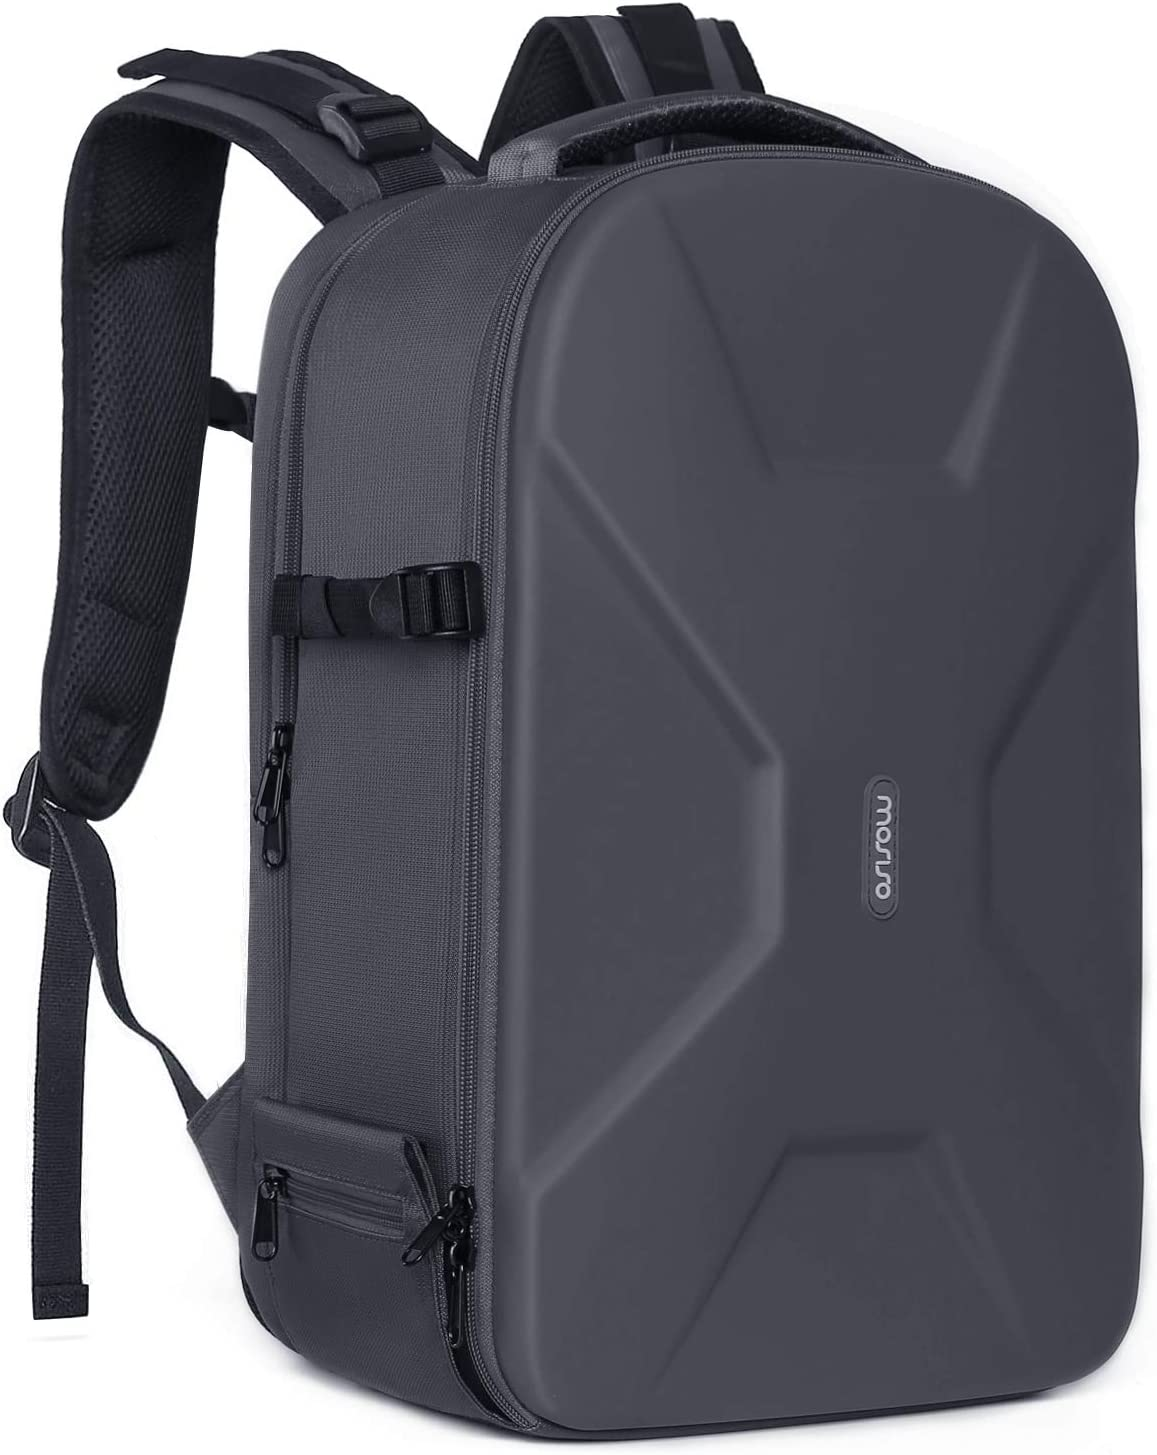 MOSISO Camera Backpack,DSLR/SLR/Mirrorless Photography Camera Bag Waterproof Hardshell Protective Case with Tripod Holder&Laptop Compartment Compatible with Canon/Nikon/Sony/DJI Mavic Drone, Gray